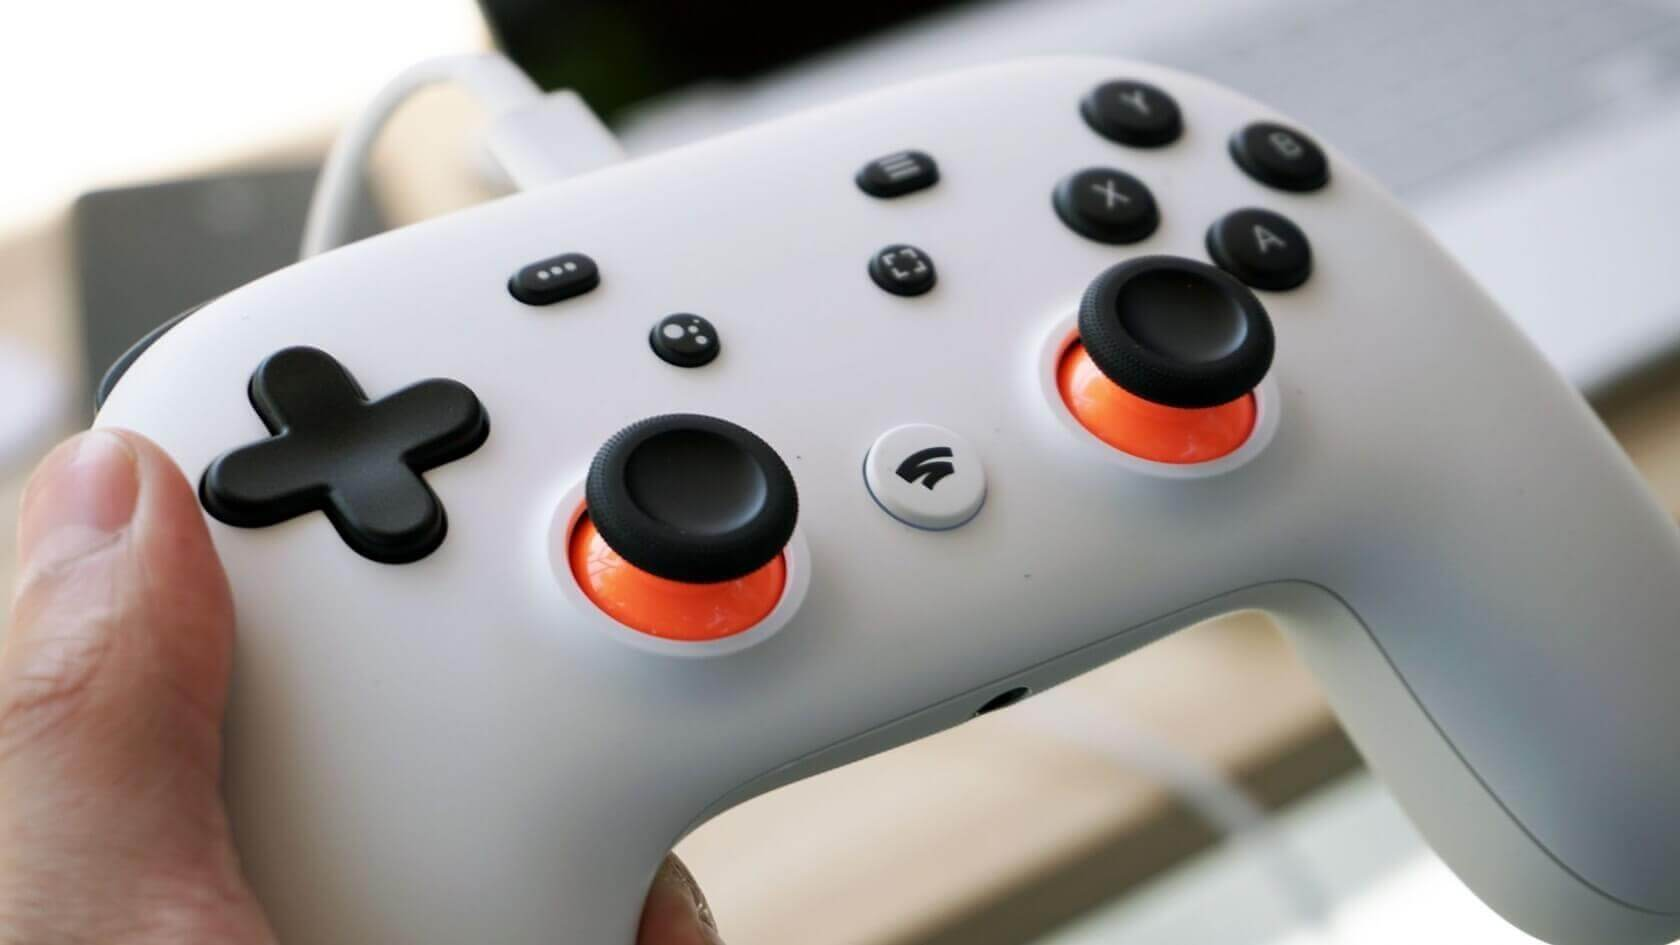 Google Stadia is coming to 18 additional Android smartphones